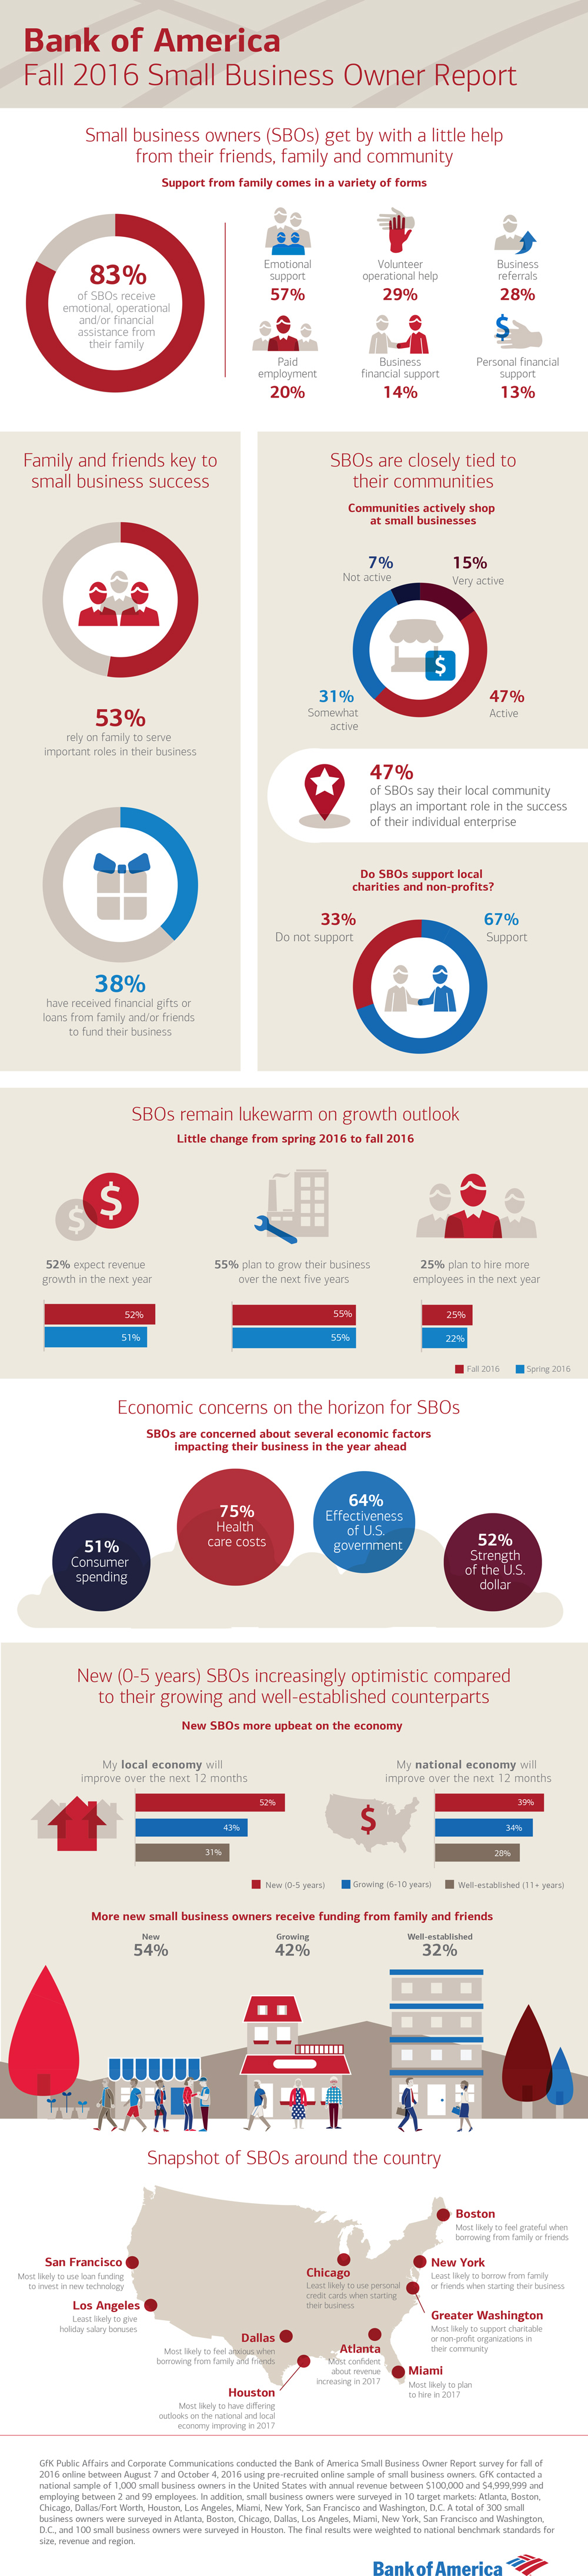 Infographic: Bank of America Fall 2016 Small Business Owner